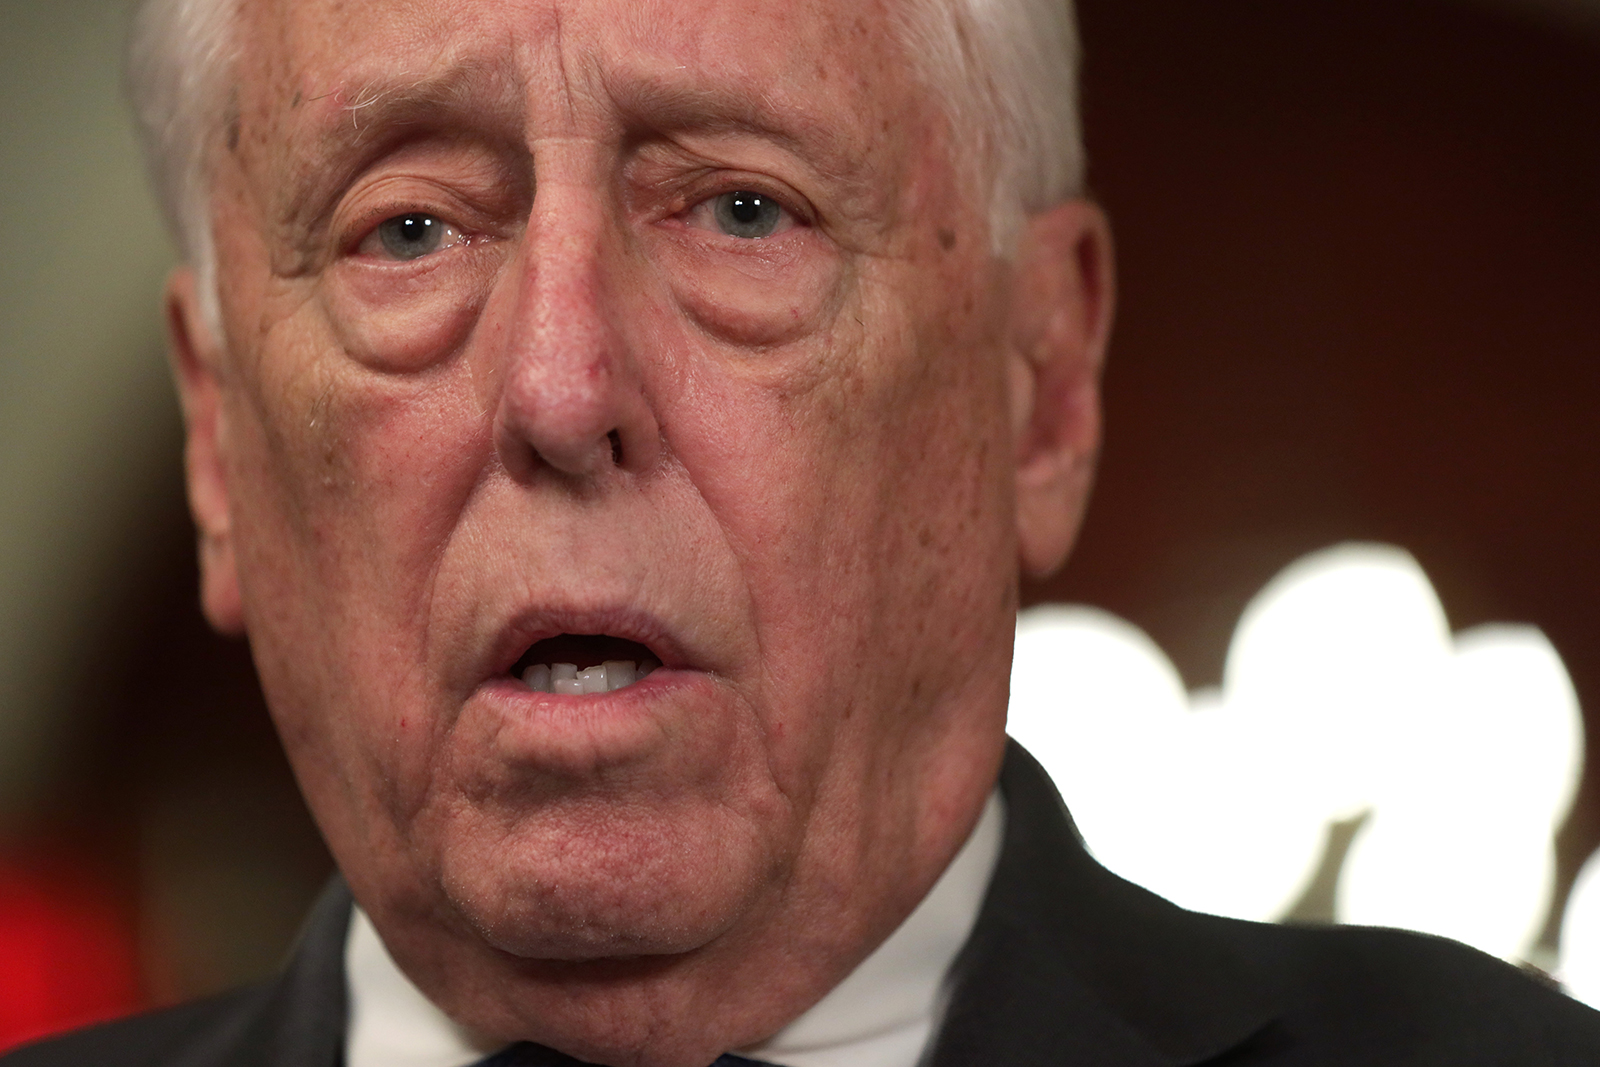 House Majority Leader Steny Hoyer speaks to members of the media on March 13, in Washington, DC.